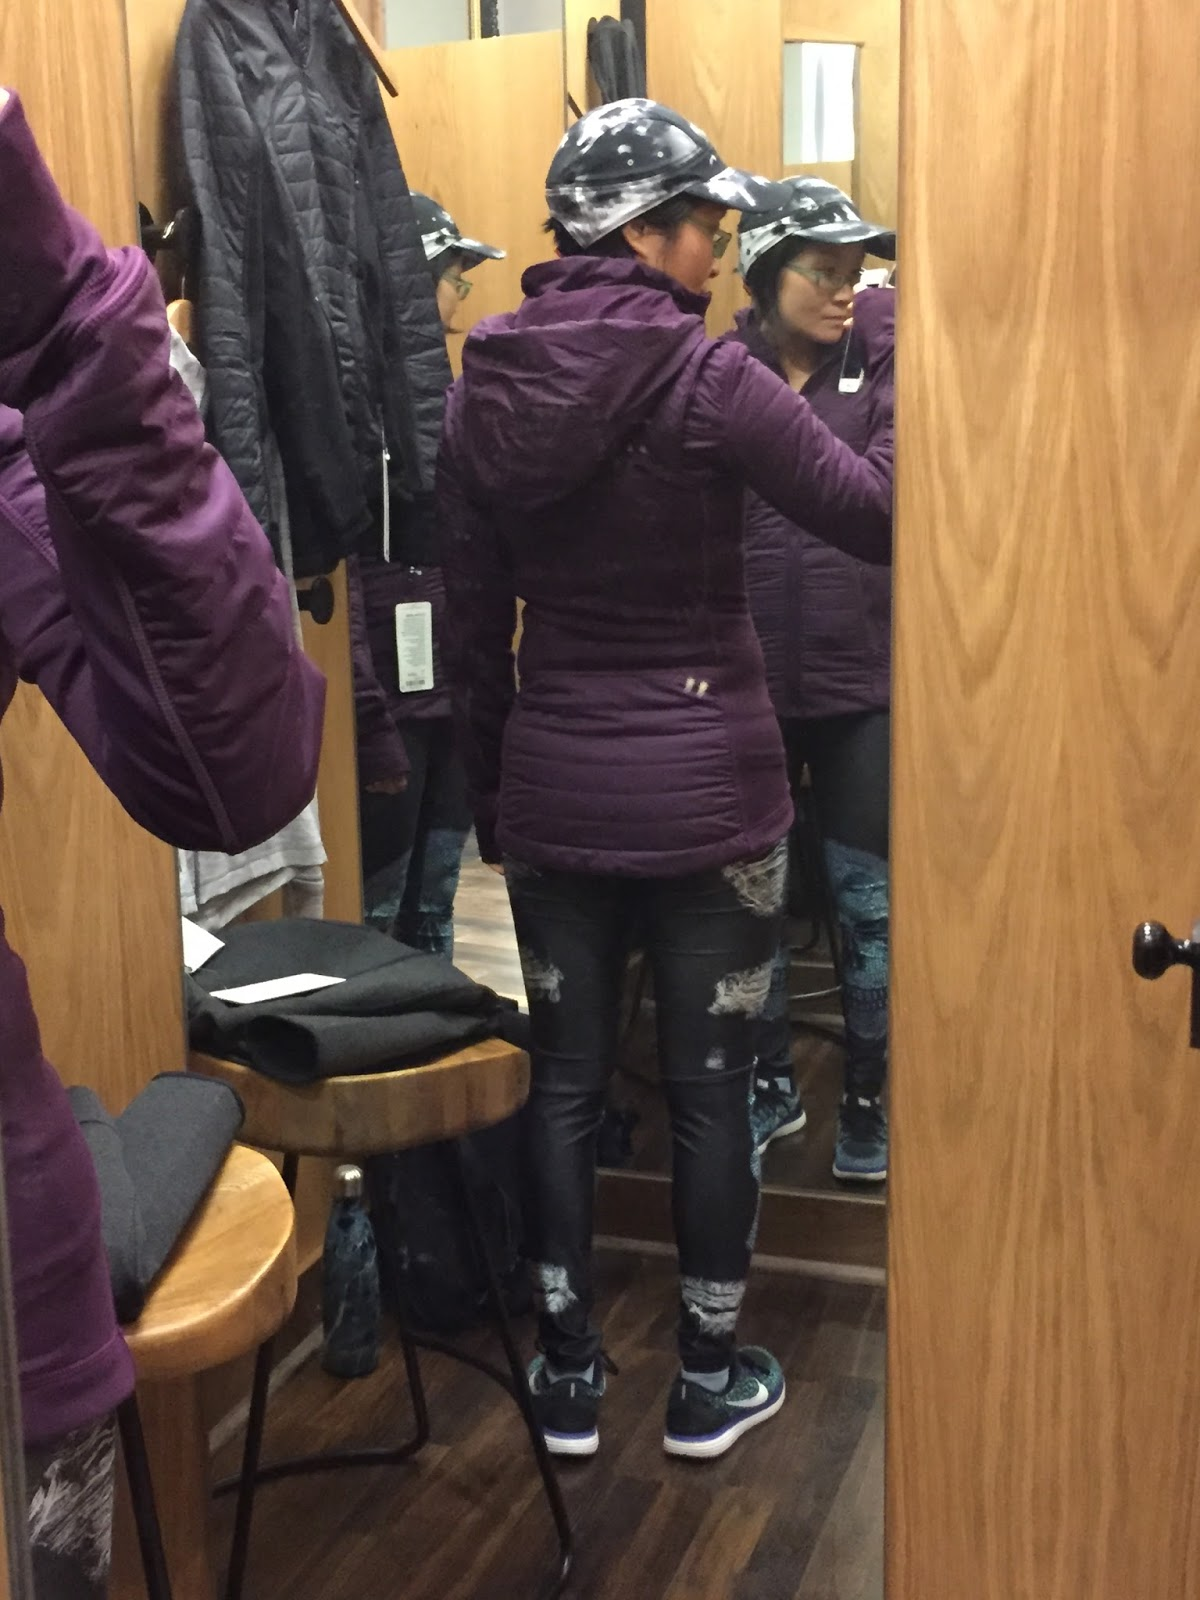 07a8051e72 Petite Impact  Fit Review Friday! First Mile Jacket